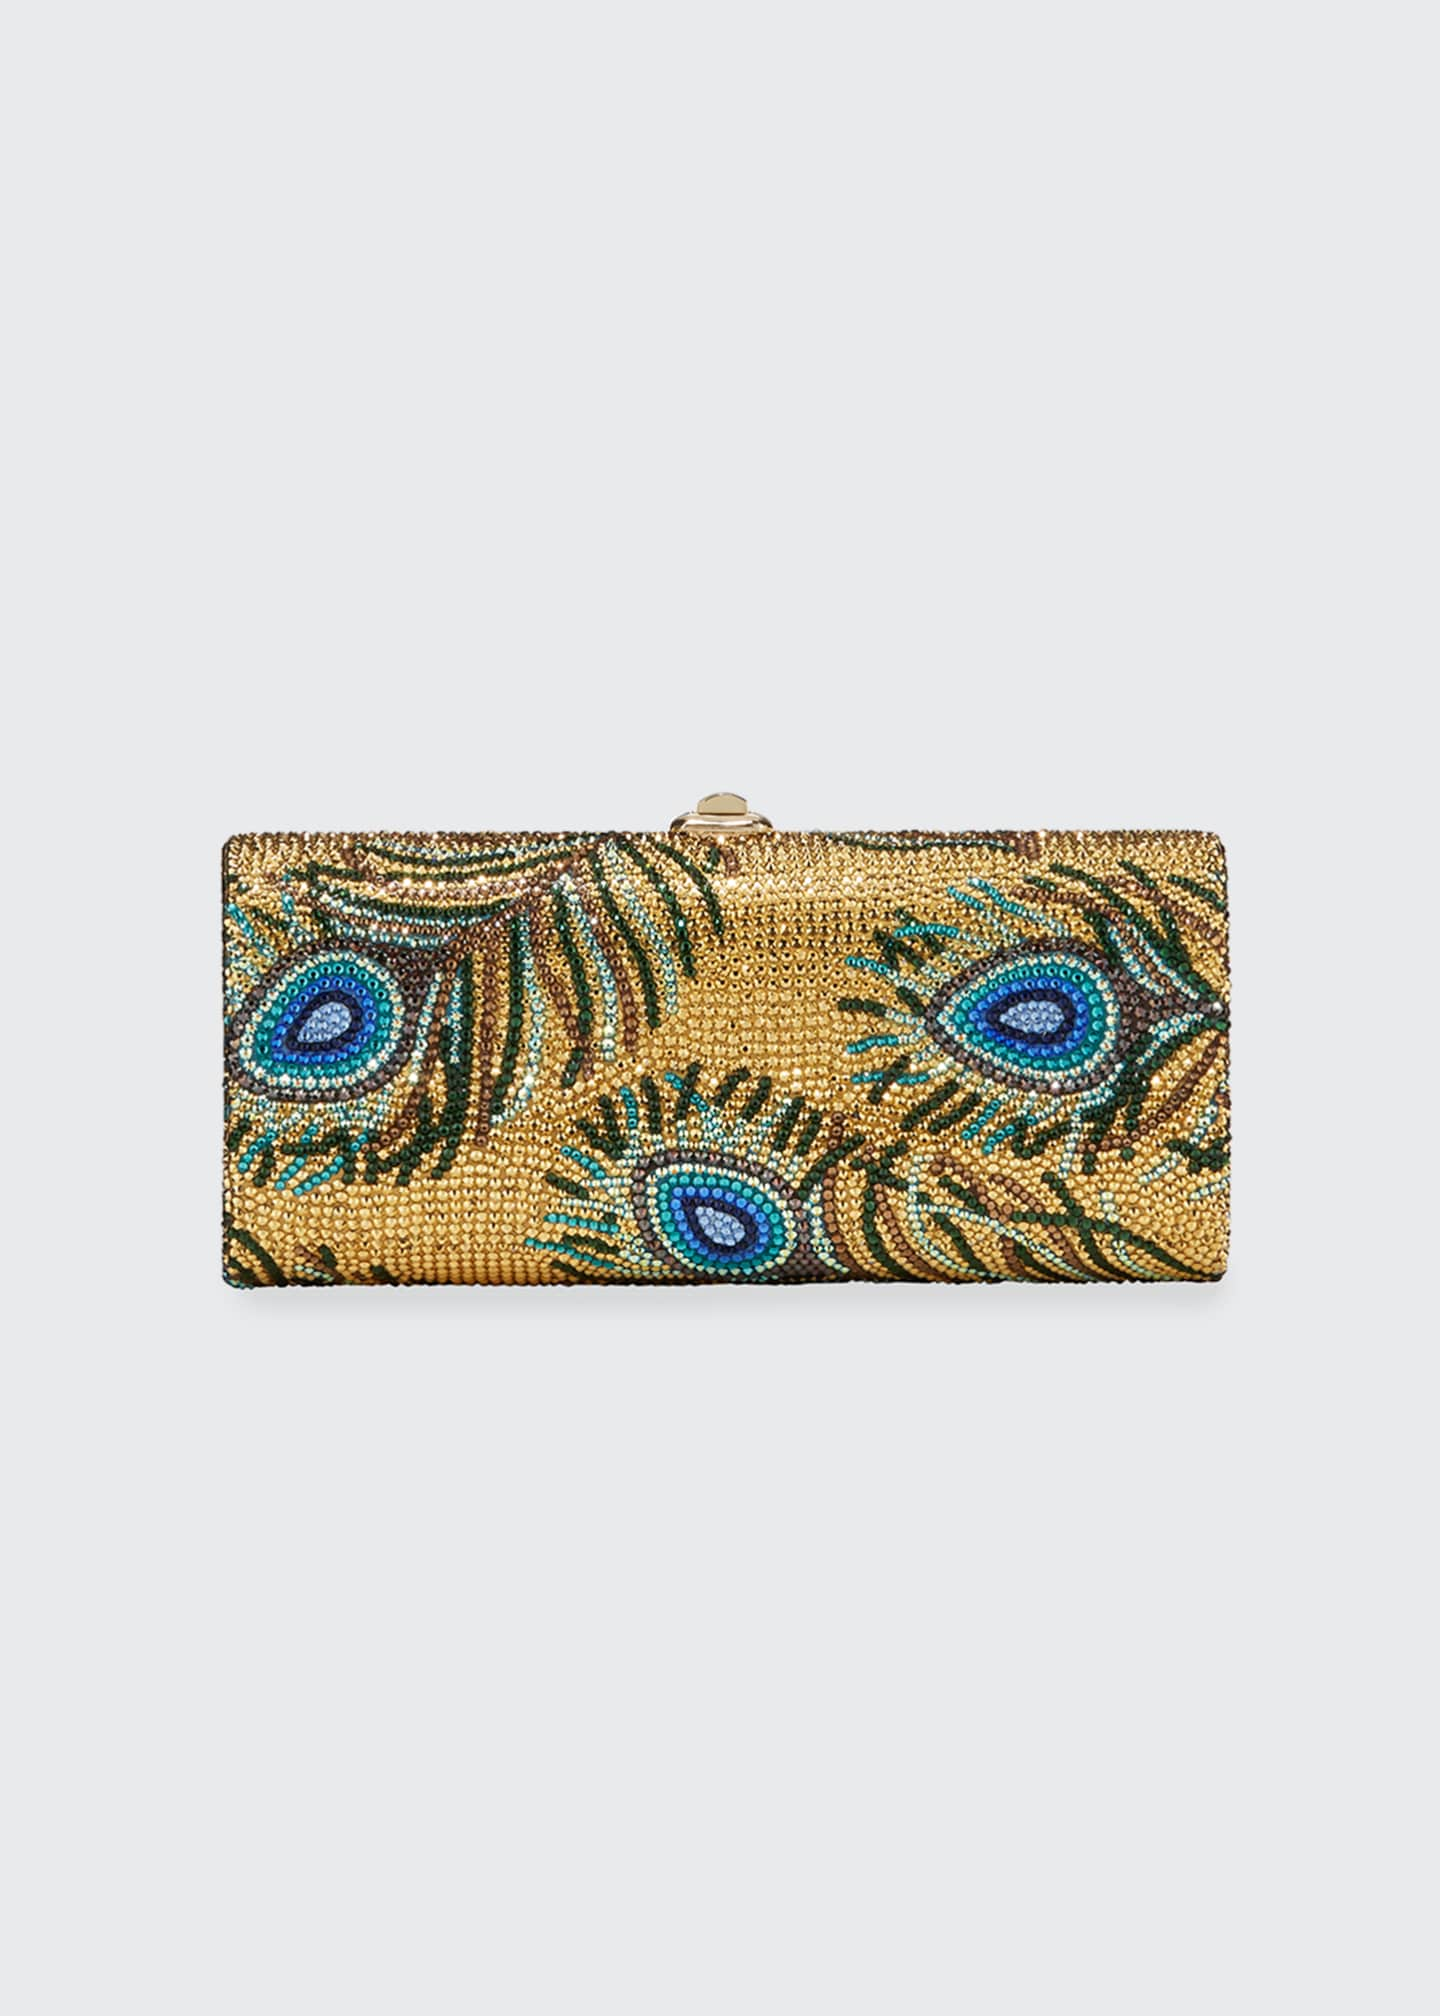 Cylinder Peacock Feathers Clutch Bag